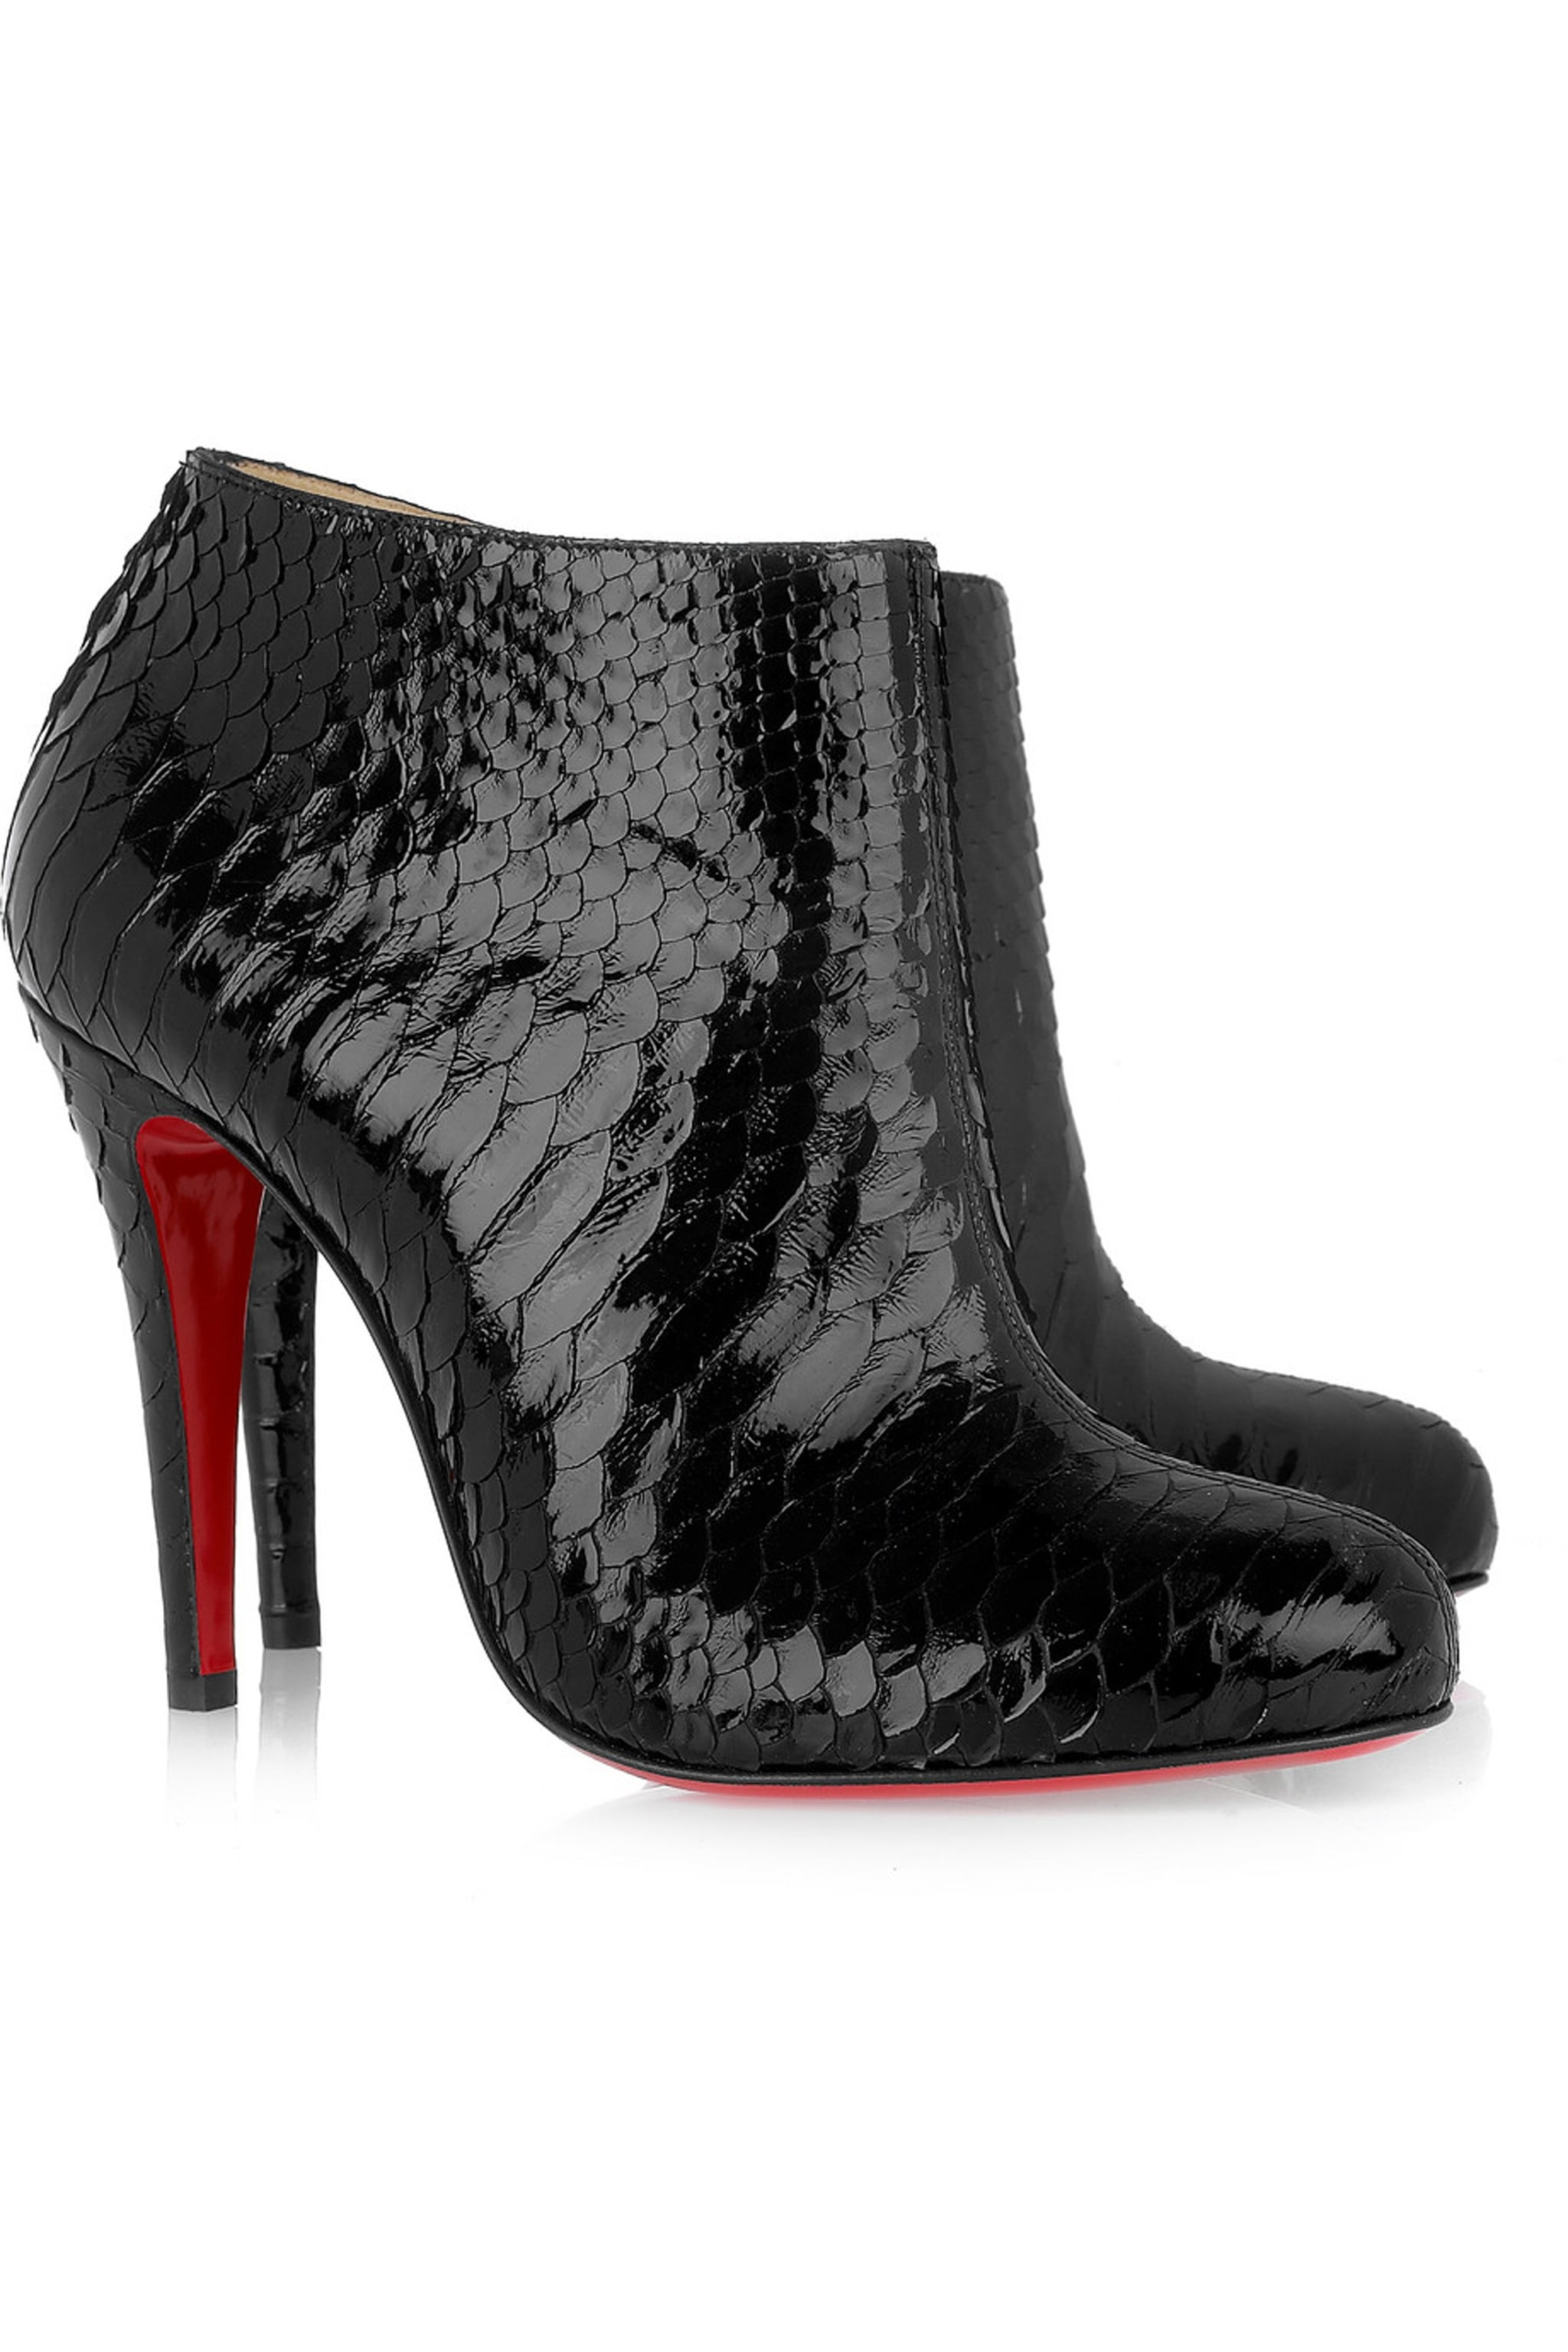 buy cheap bc85f 6a3b8 Christian Louboutin Belle Python Ankle Boots ($797 on sale ...